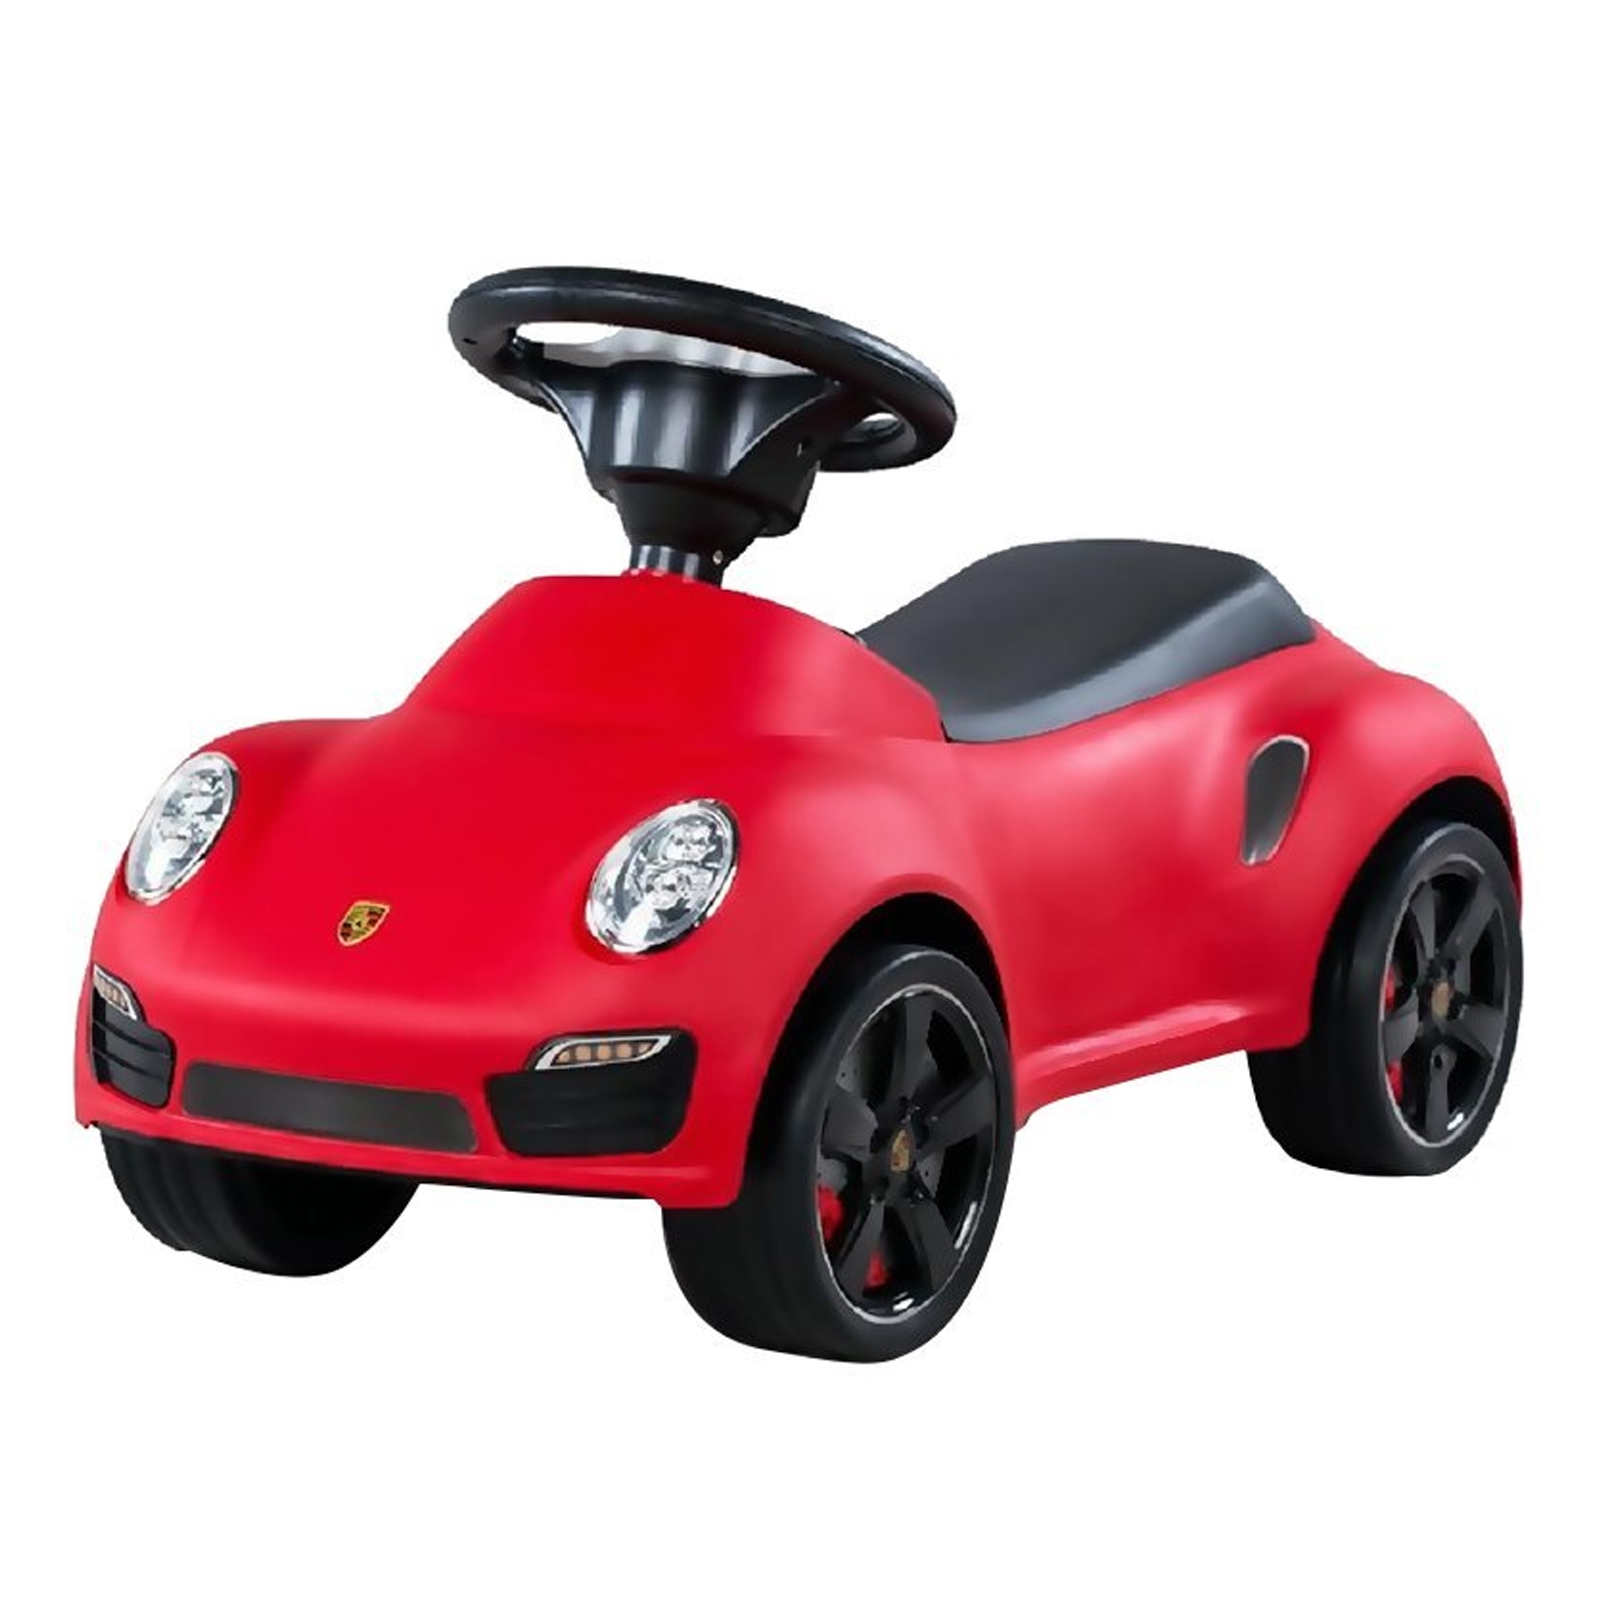 Licensed Porsche 911 Turbo Kids Ride On Push Car in Red